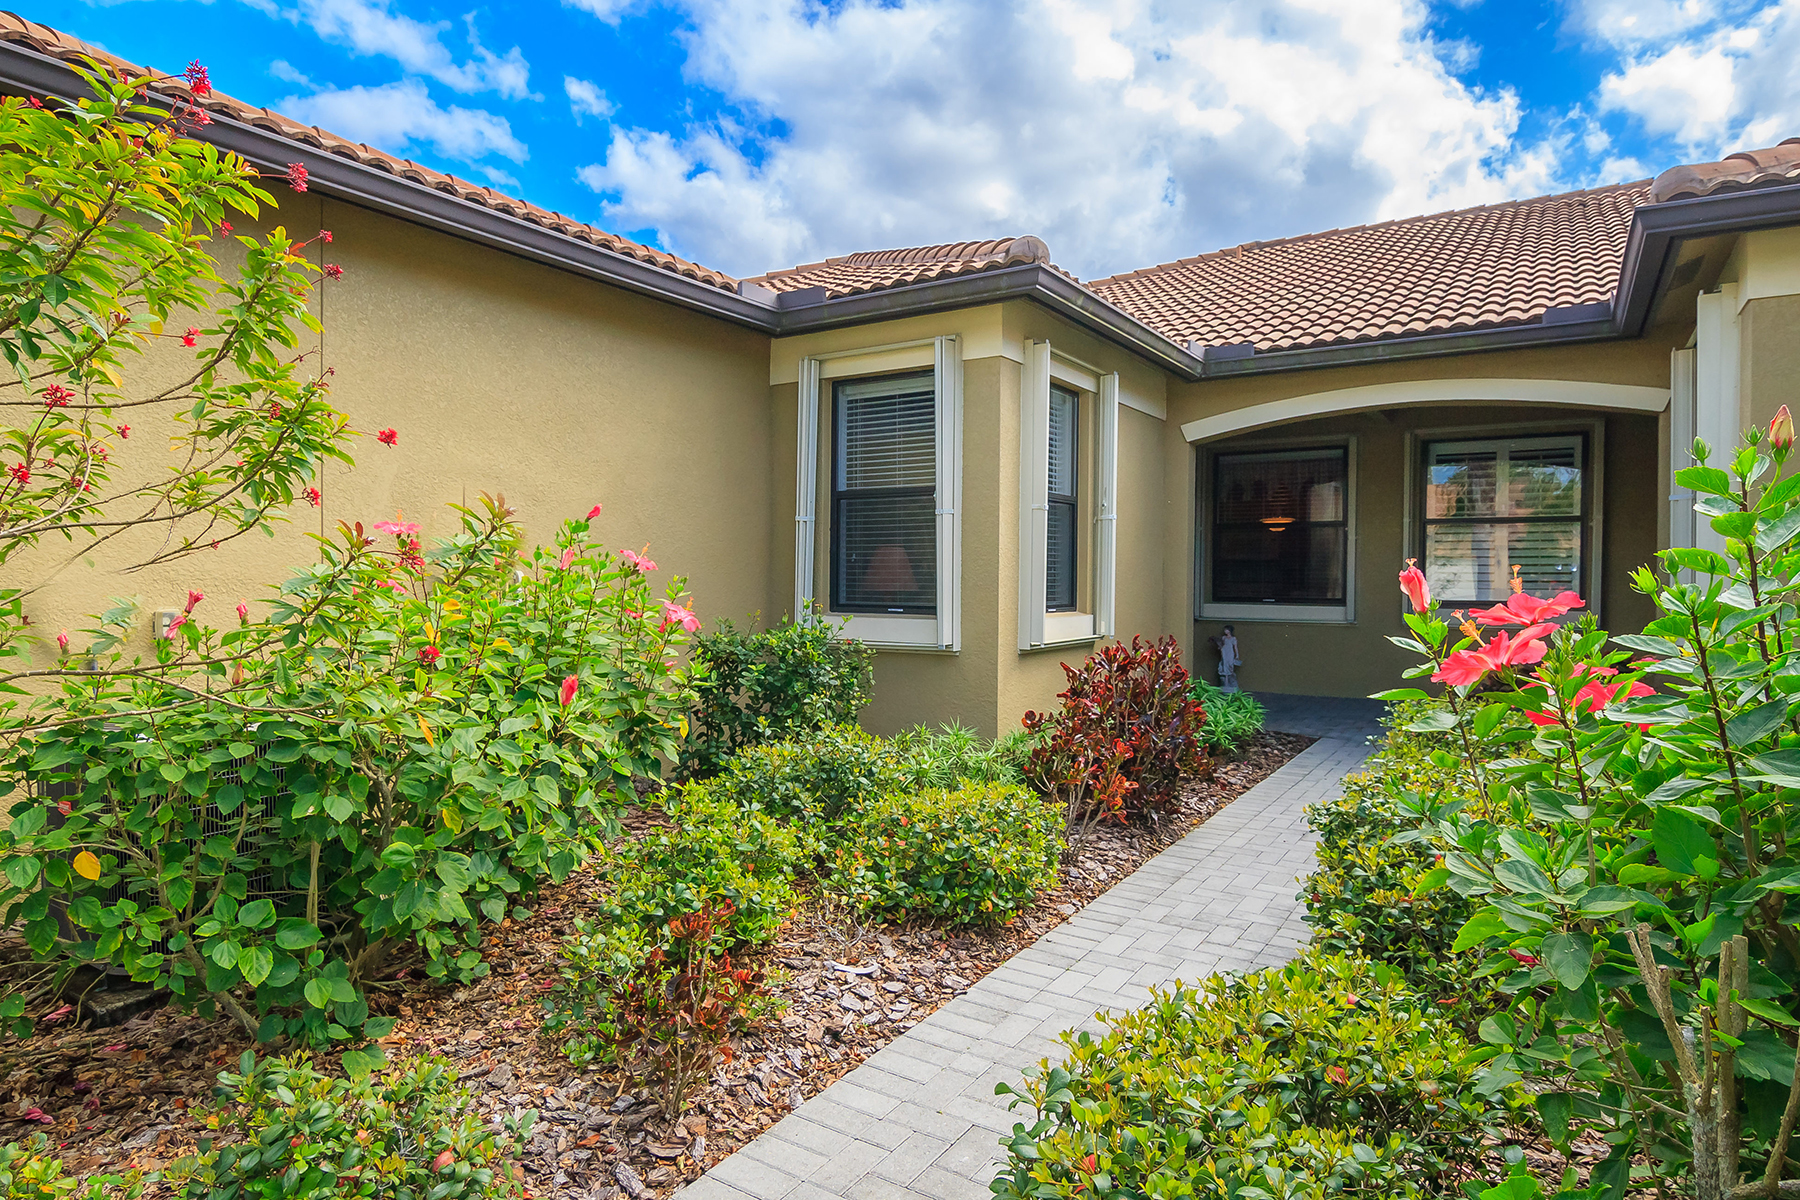 Townhouse for Sale at VENETIAN FALLS 11127 Campazzo Dr Venice, Florida, 34292 United States